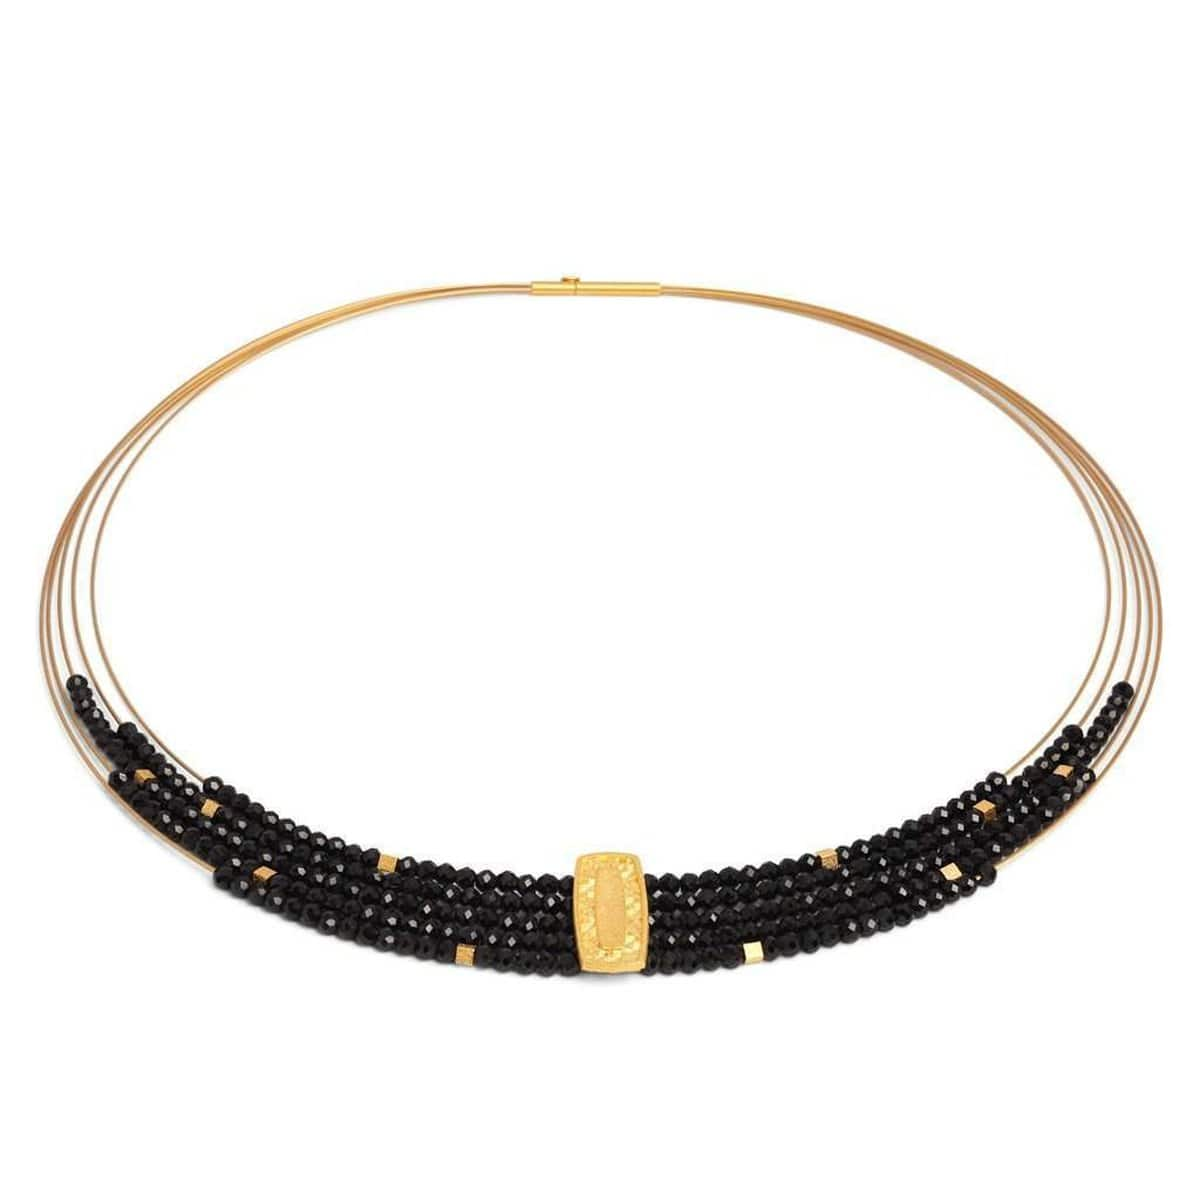 Movena Black Spinel Necklace - 84922496